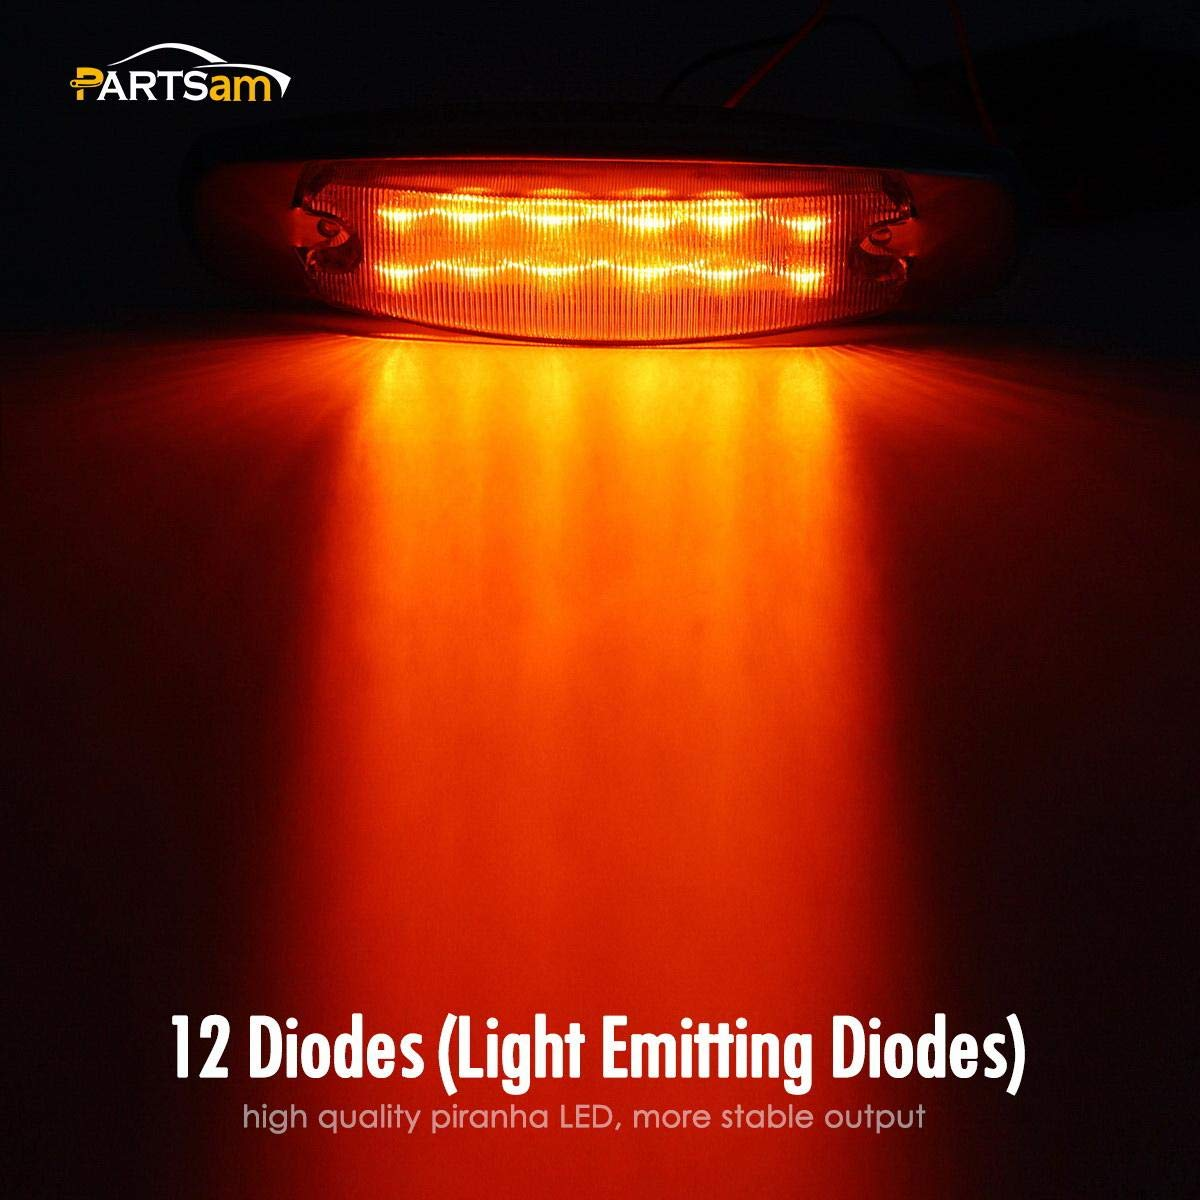 Partsam Pack10 Sealed Peterbilt-style 12 Amber LED Diode Side Marker Clearance Lamp Clear Lens Surface Mount 2 rows of 6 diodes Stainless Trim